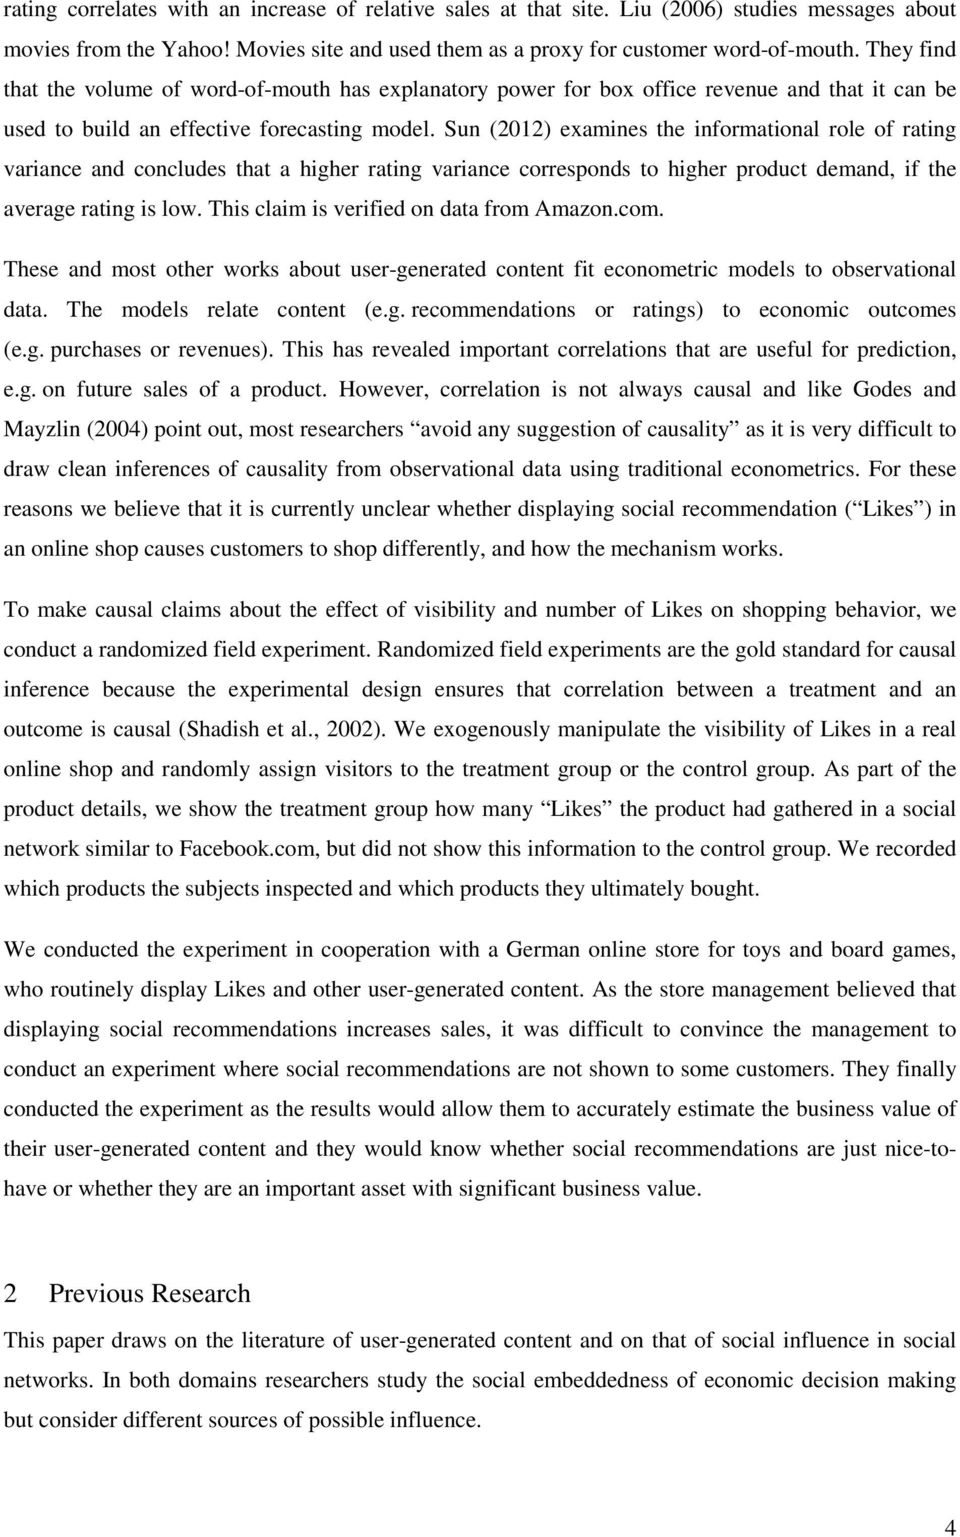 Sun (2012) examines the informational role of rating variance and concludes that a higher rating variance corresponds to higher product demand, if the average rating is low.